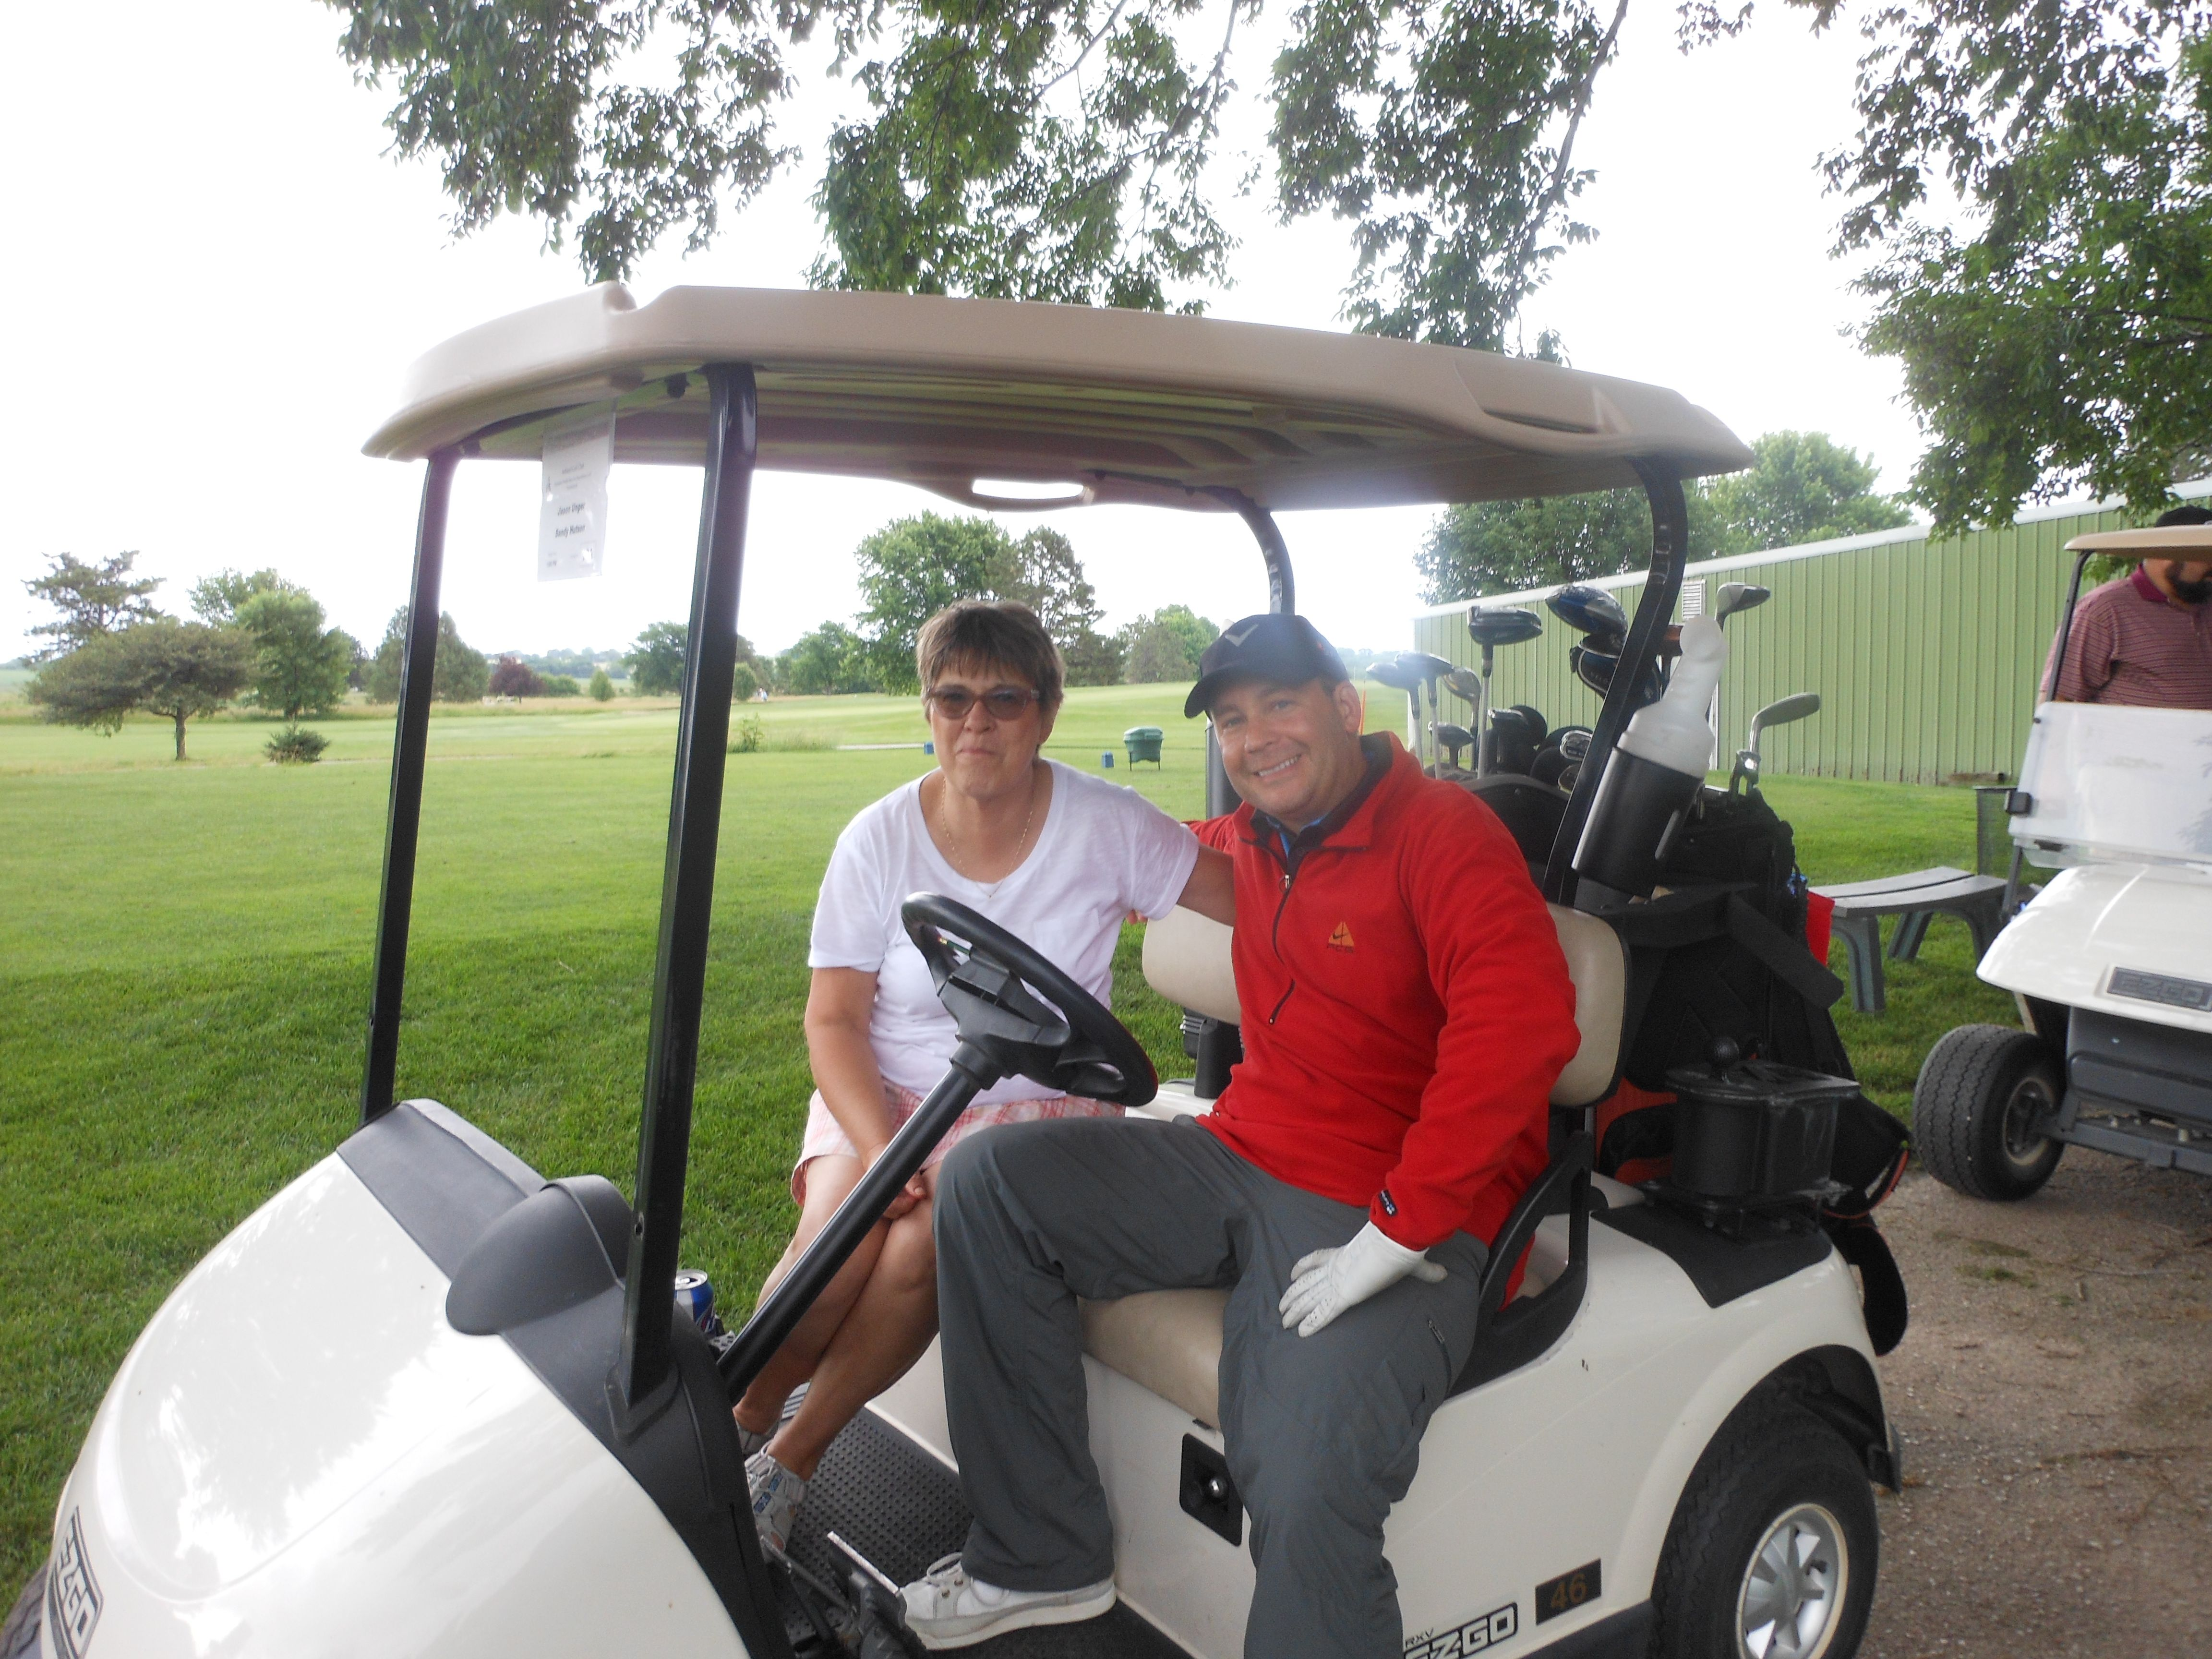 Join us to golf and raise scholarship funds!